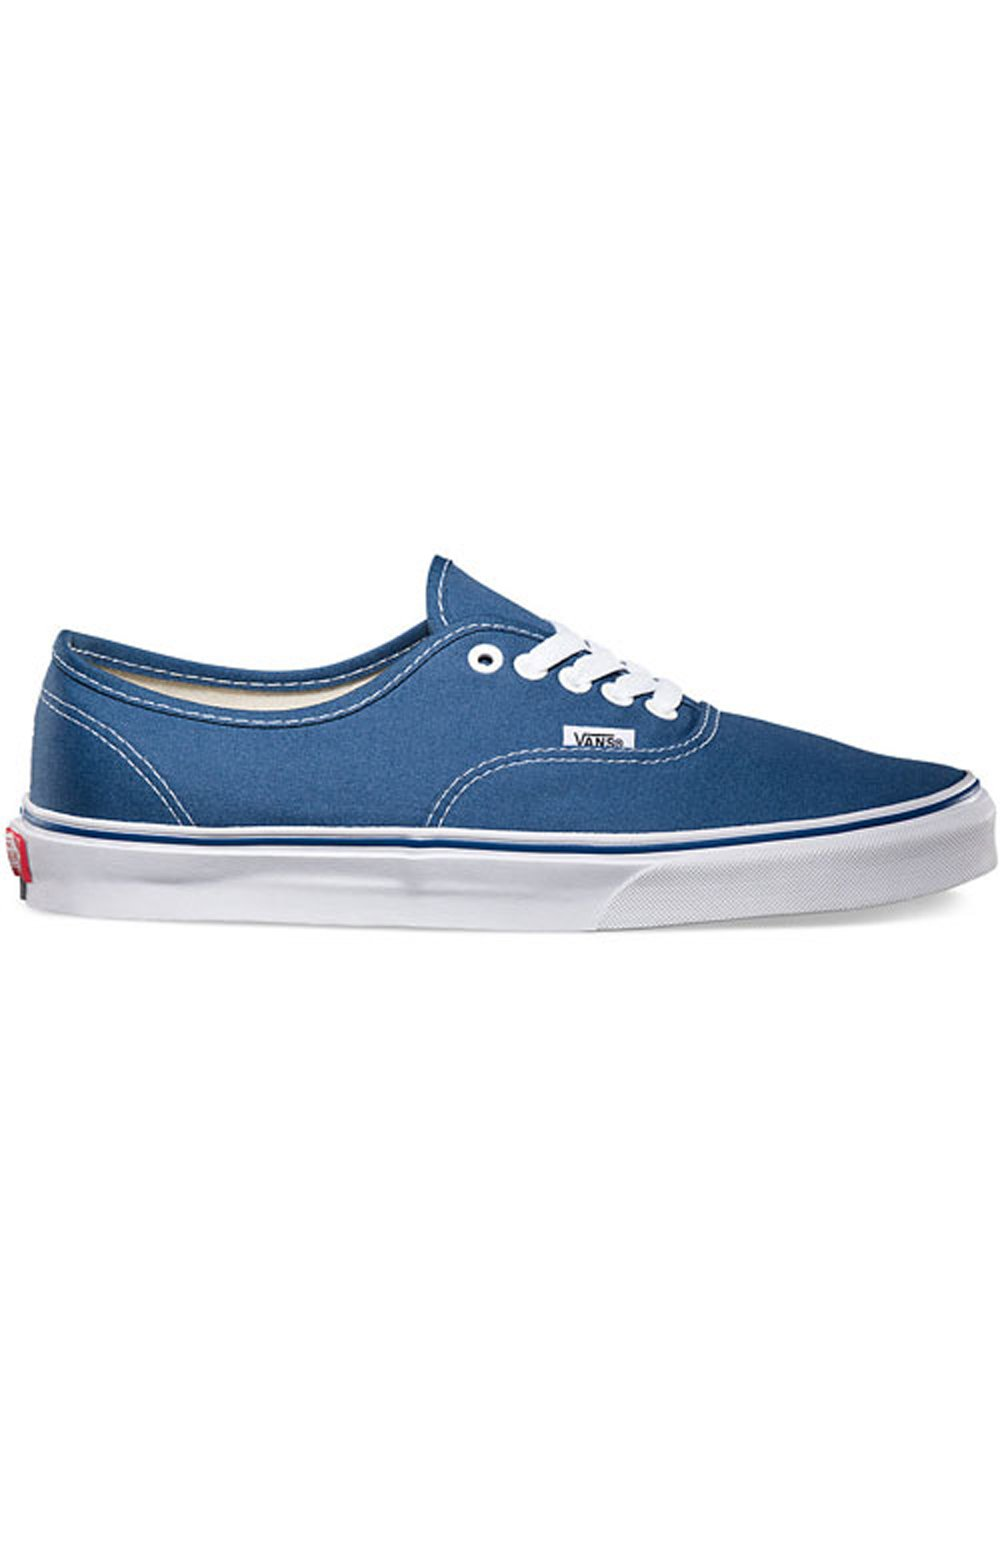 (EE3NVY) Authentic Shoe - Navy